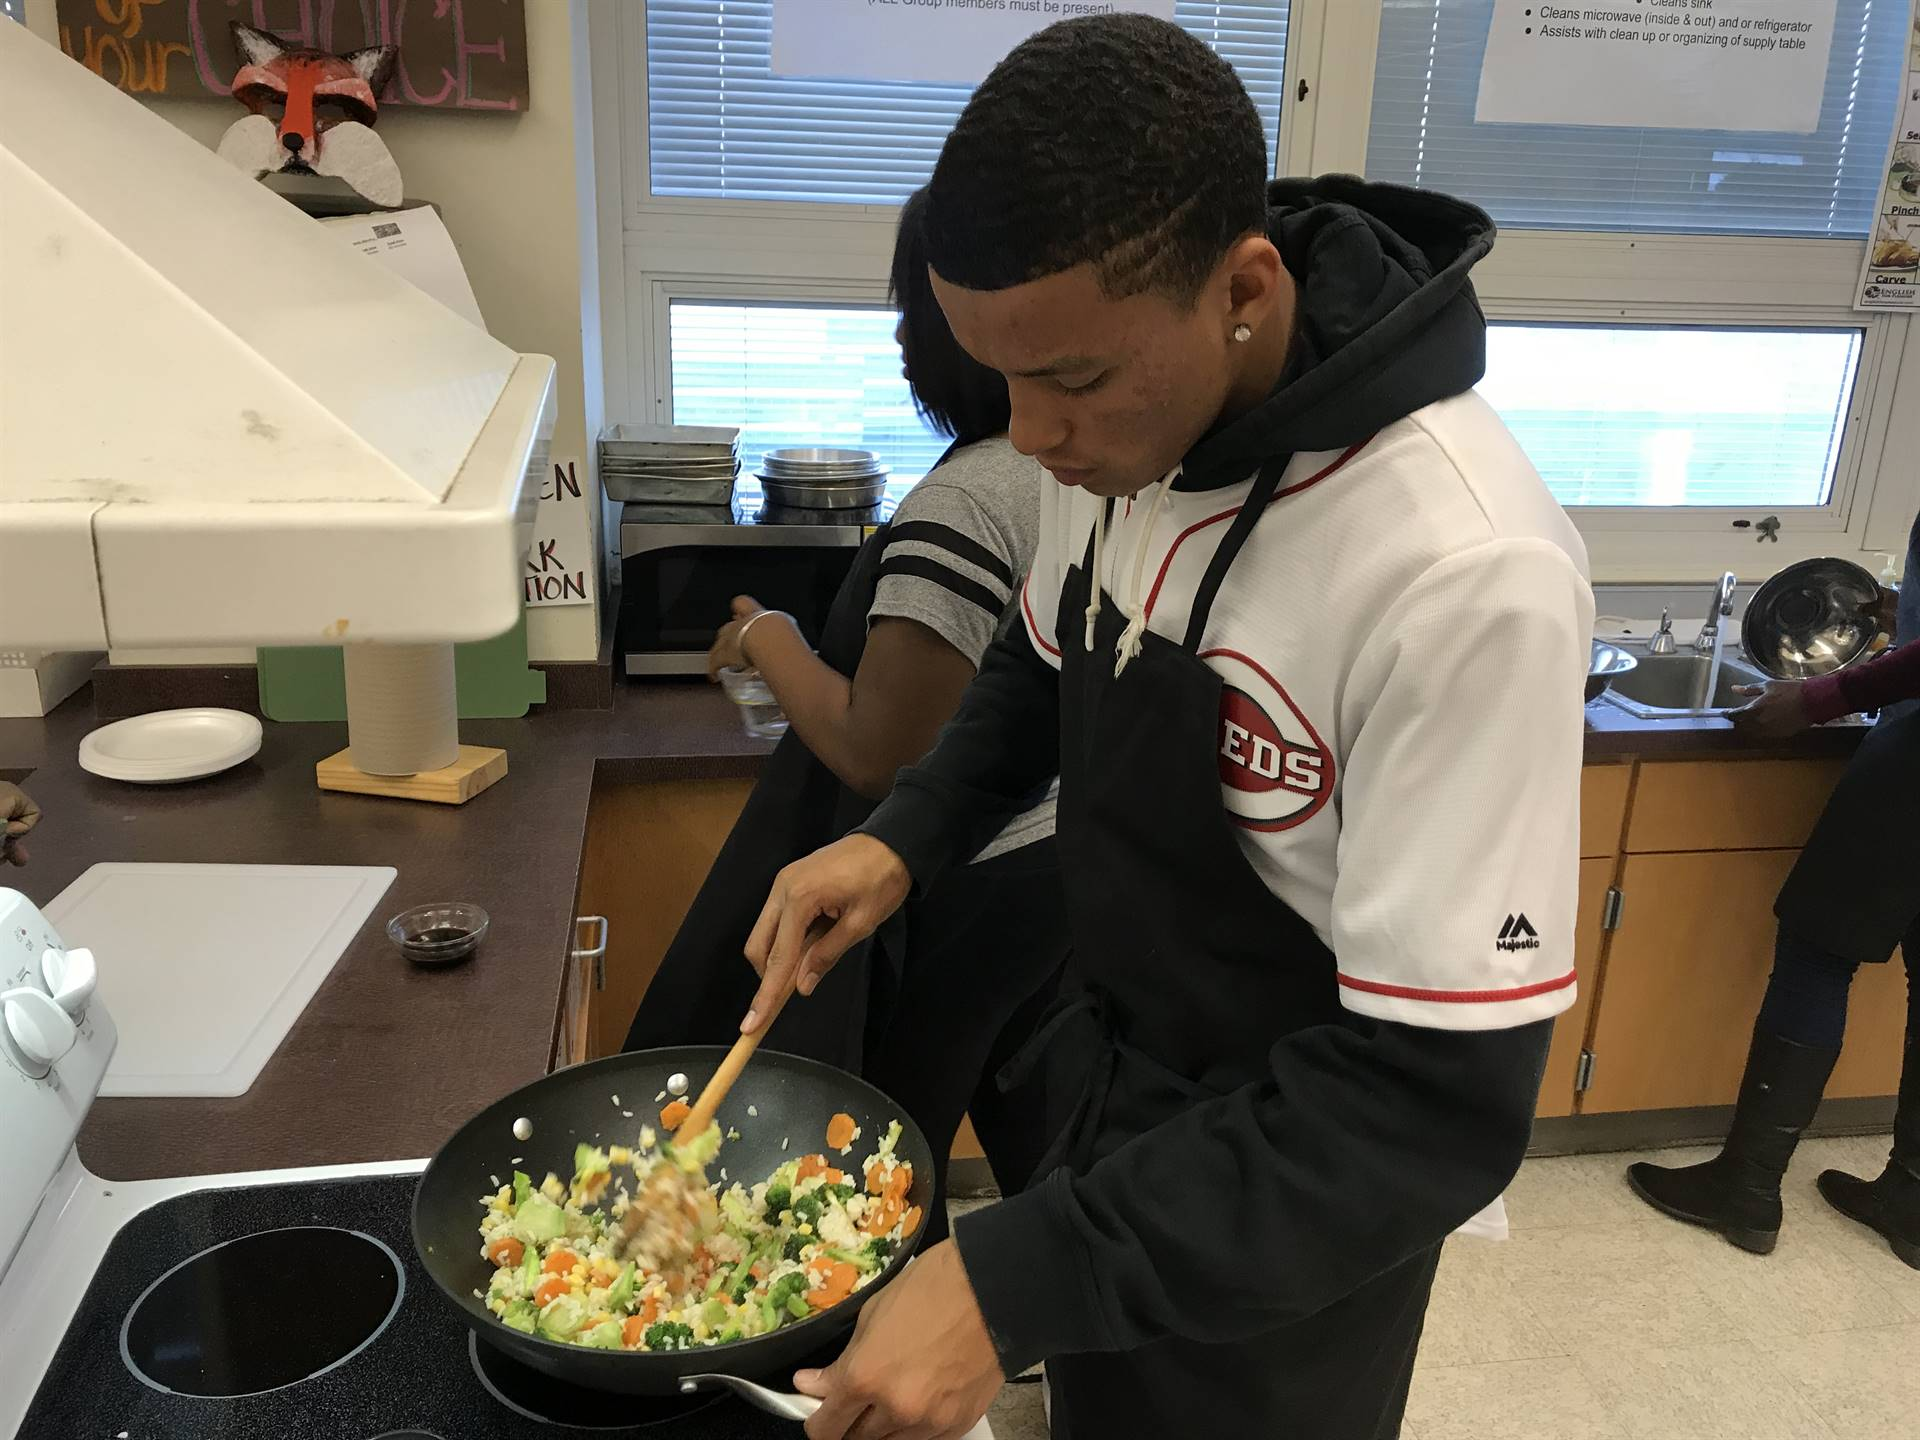 Food Tech students learn to make healthy stir fry